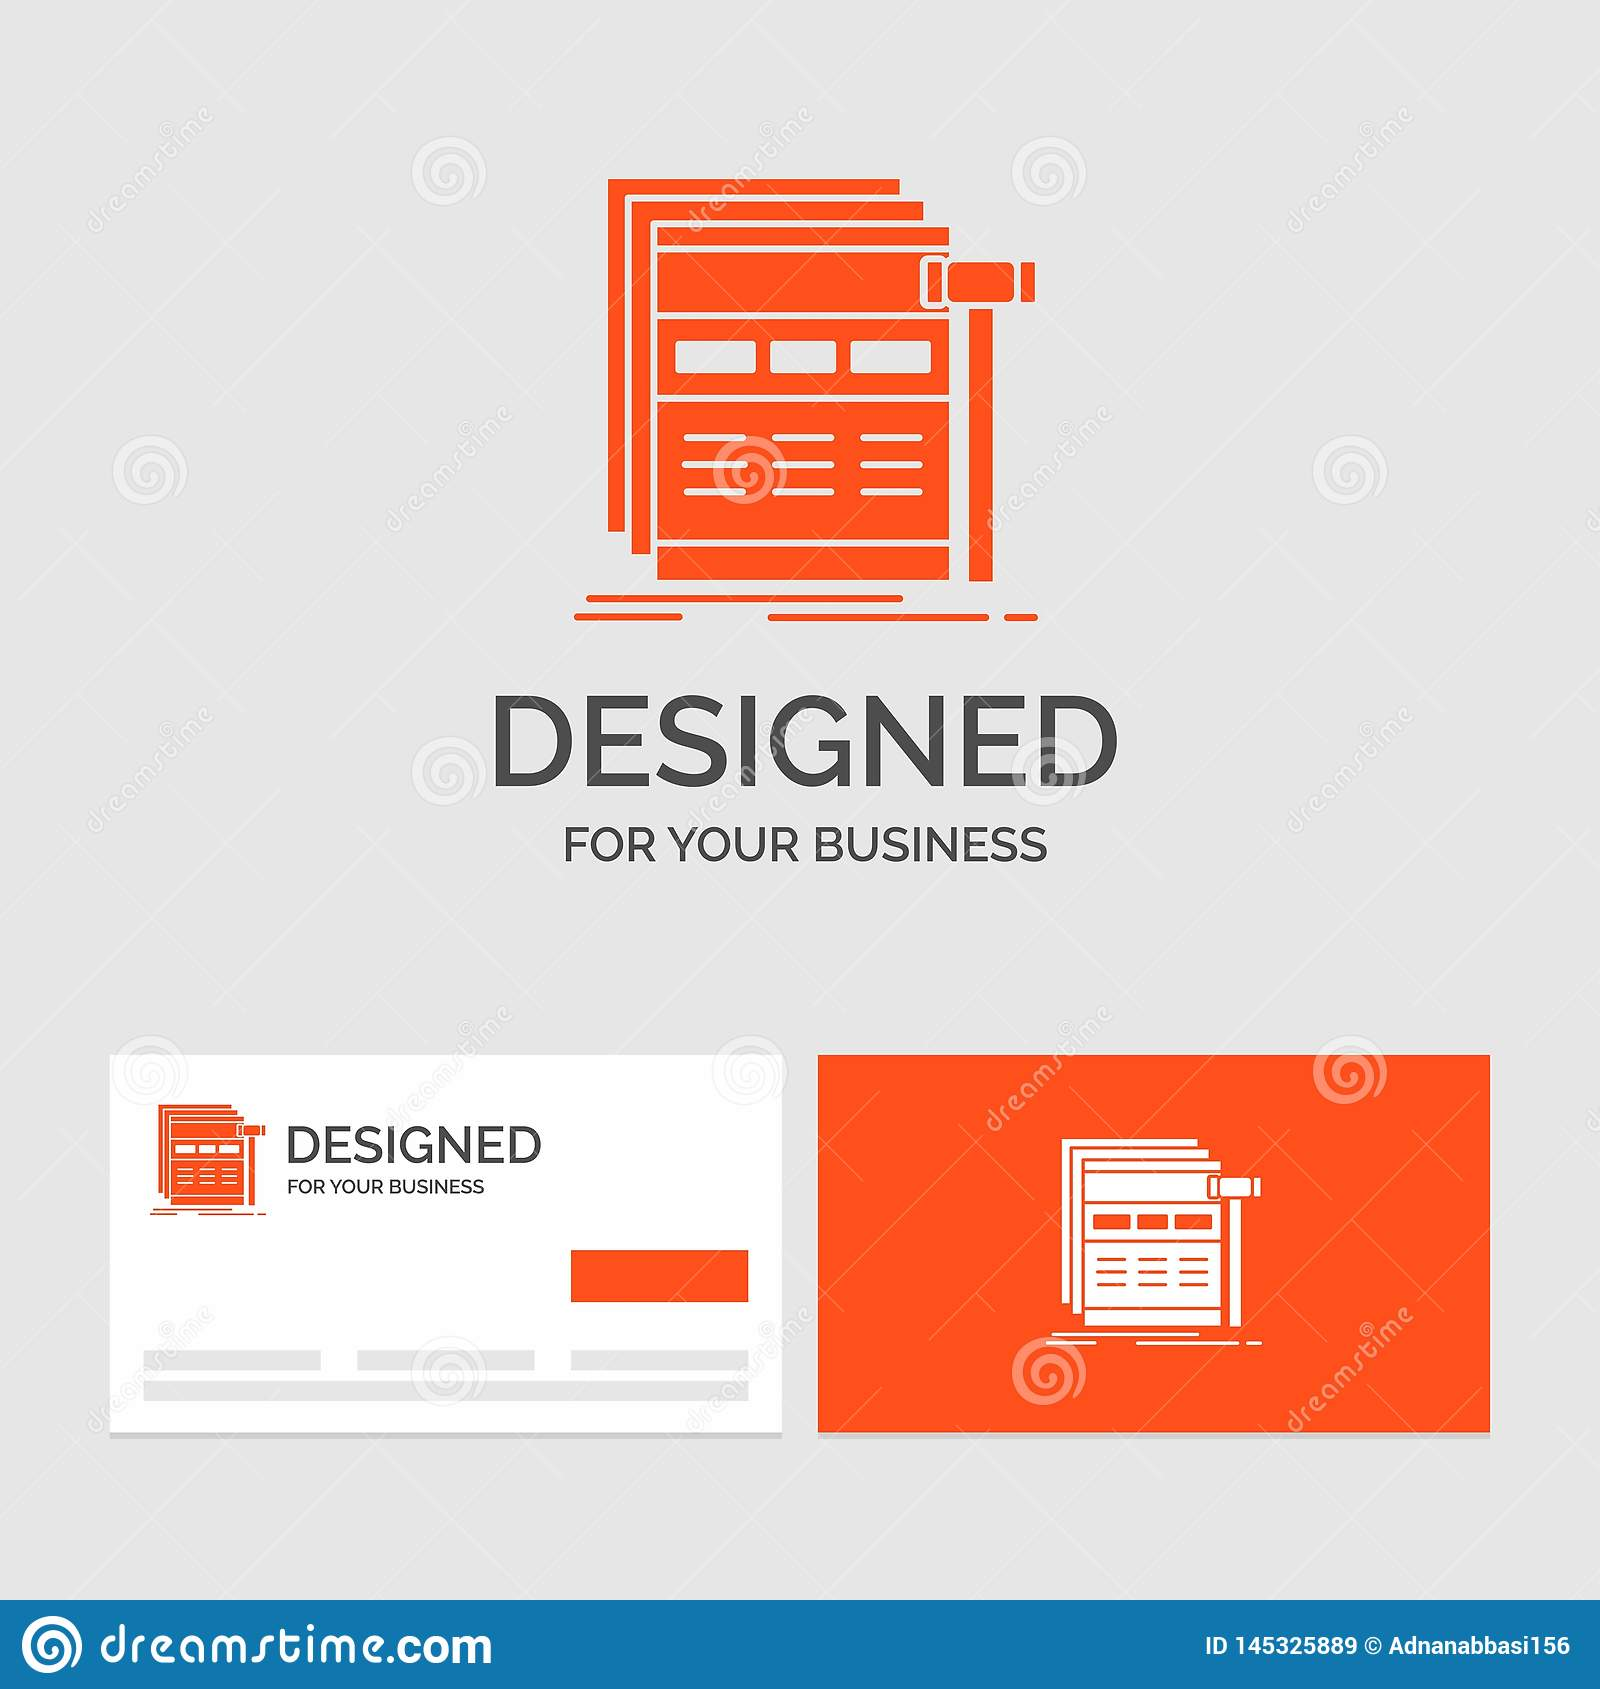 Business logo template for Internet, page, web, webpage, wireframe. Orange Visiting Cards with Brand logo template